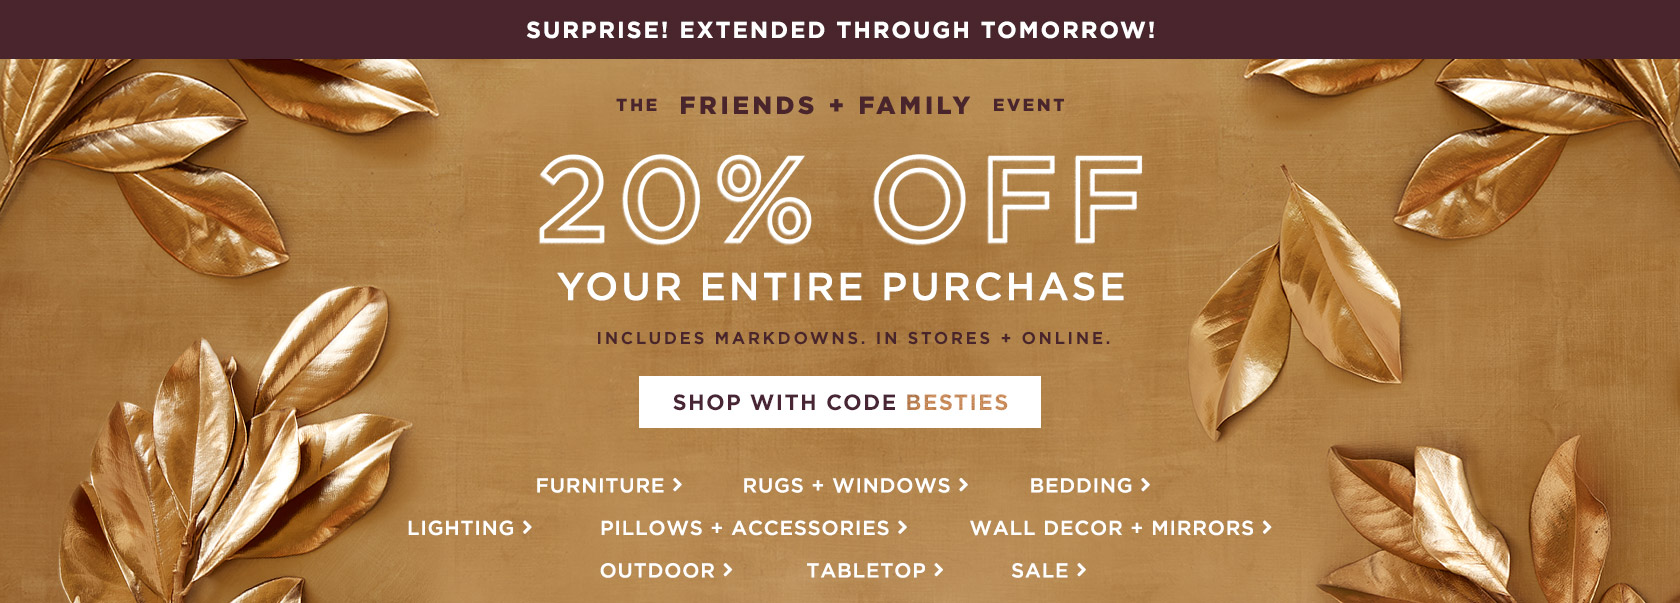 Surprise! Extended Through Tomorrow! The Friends + Family Event - 20% Off Your Entire Purchase With Code BESTIES